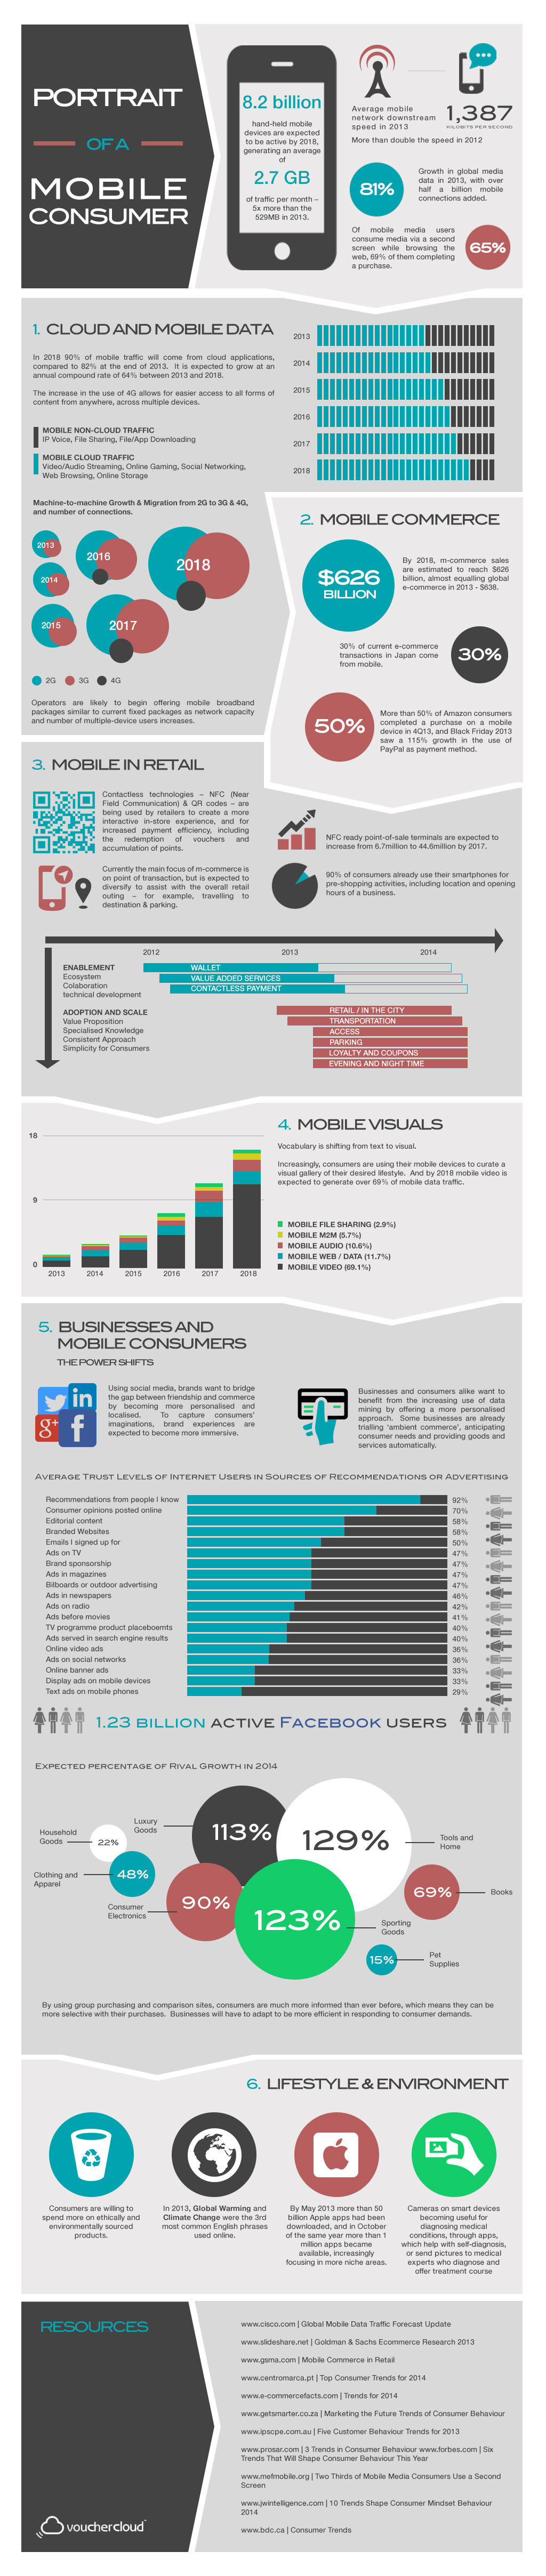 The future of mobile commerce in 2018 - #Mobile #Infographic #diigitalmarketing #socialmedia